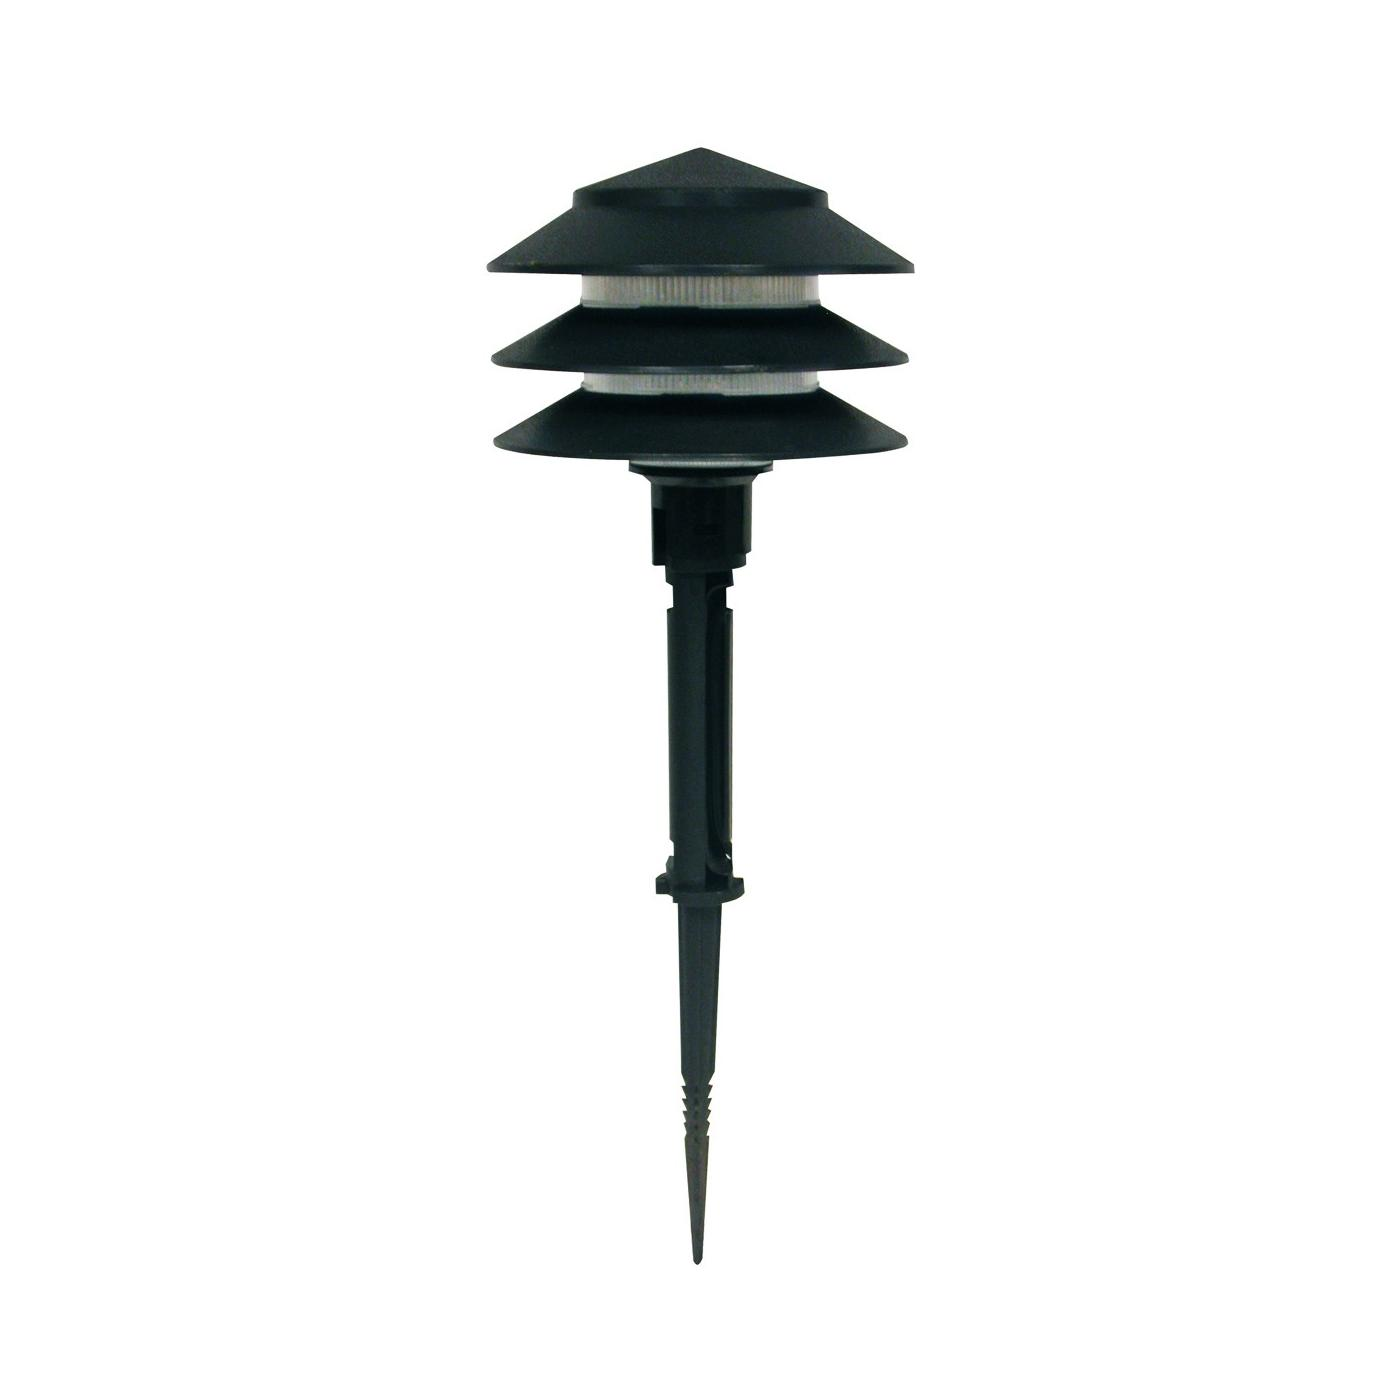 Low voltage garden outdoor lights the most important for Low voltage garden spotlights